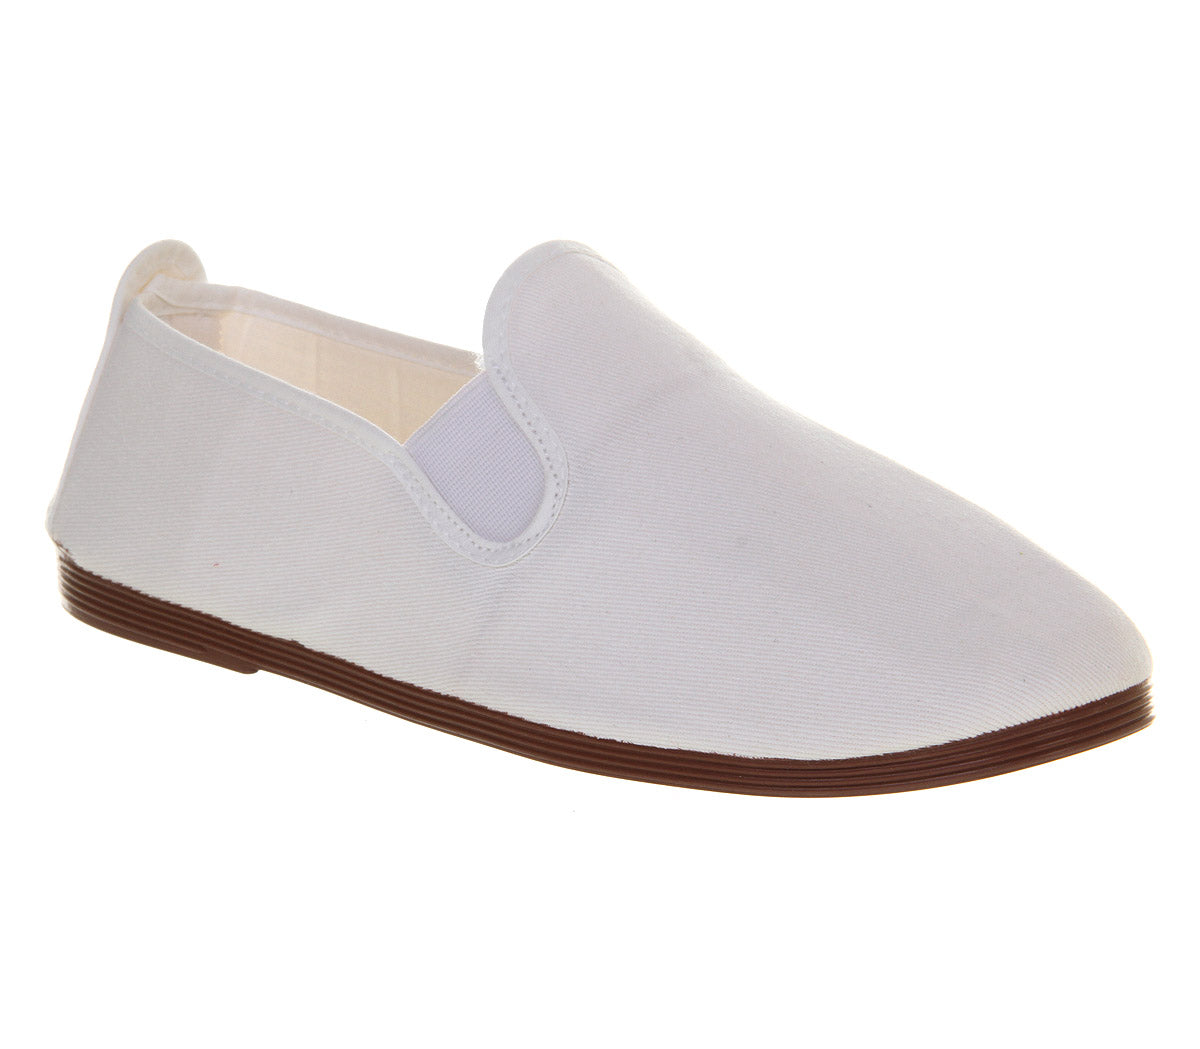 Mens Flossy Plimsoles White Canvas Casual Shoes - OFFCUTS SHOES by OFFICE